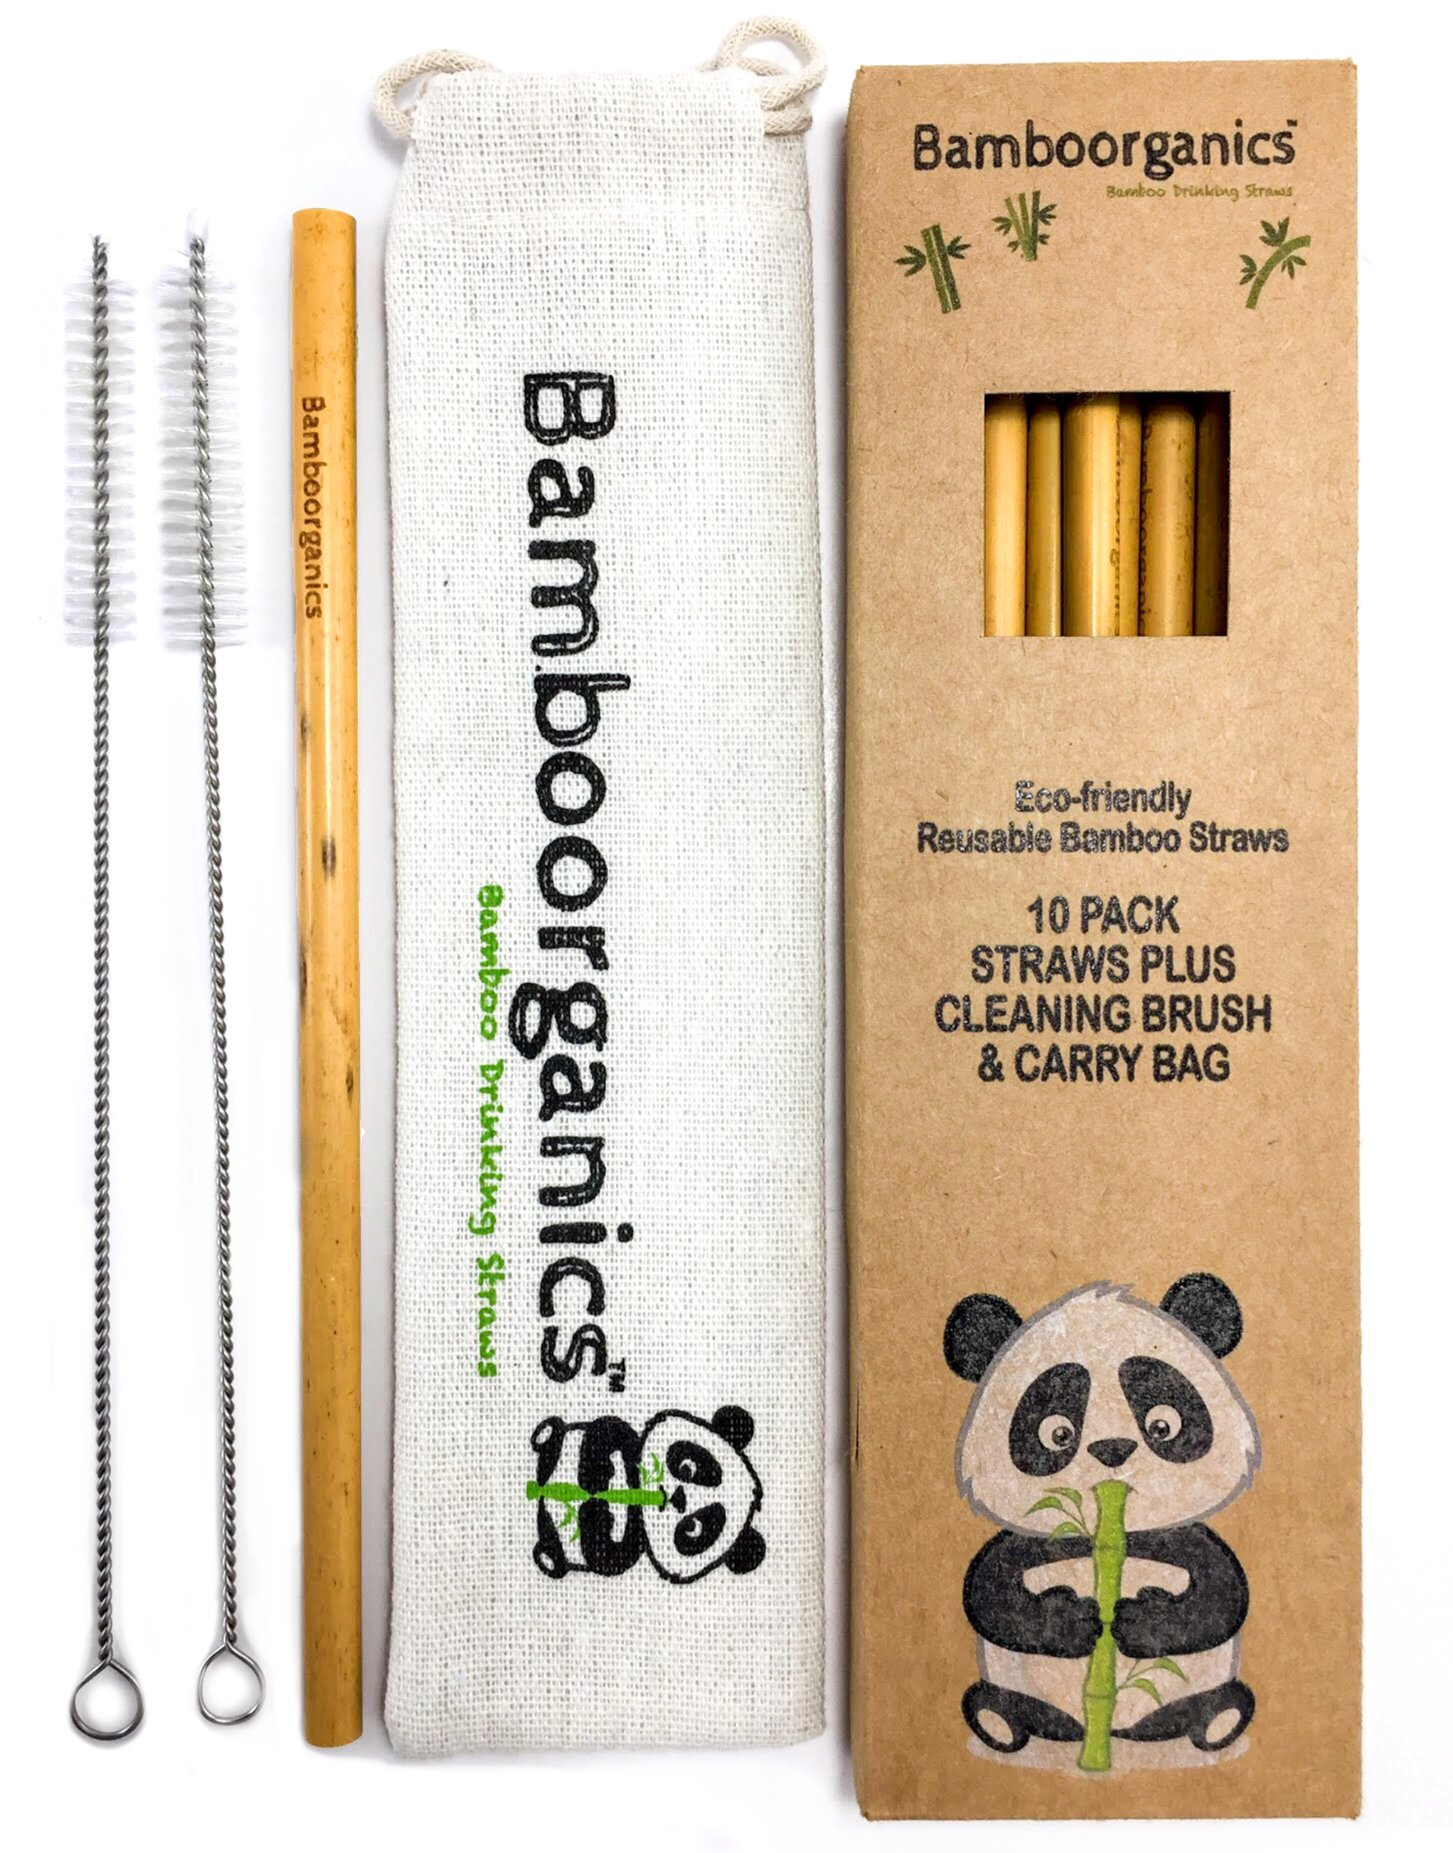 Zero Waste, Reusable, Premium Bamboo Drinking Straws & Natural Cotton Travel Bag | Large Mouth Straw Set of 10 with 2 Cleaning Brushes | Eco-Friendly, Biodegradable | 8in Long by Bamboorganics (Image #2)